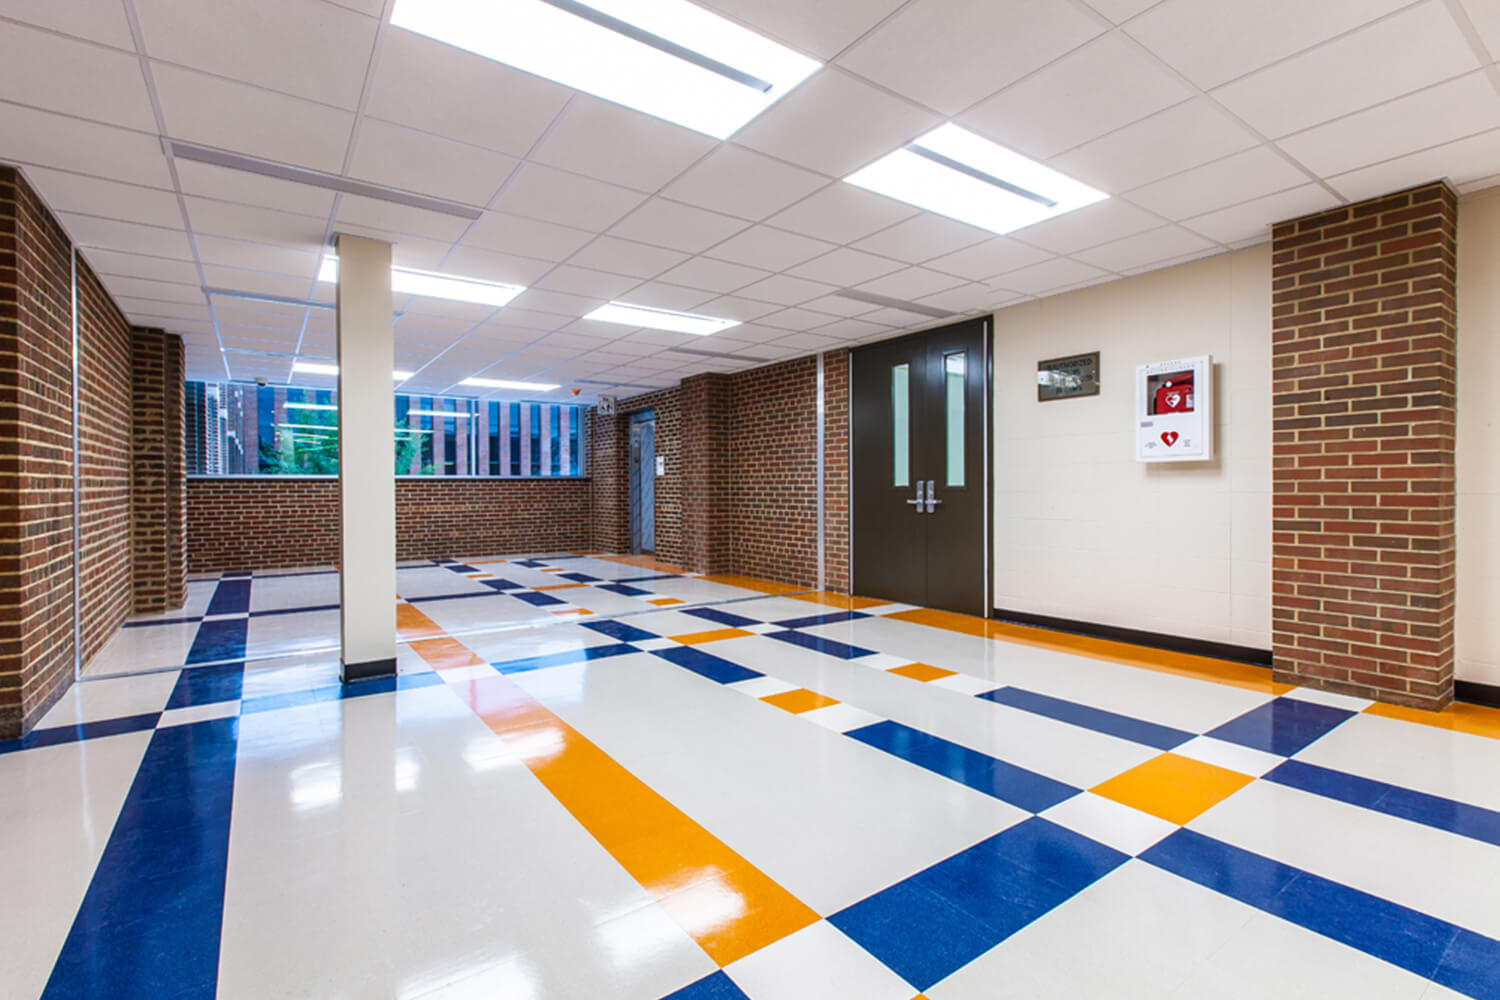 Evanston Township High School Entry Amp Renovation Project